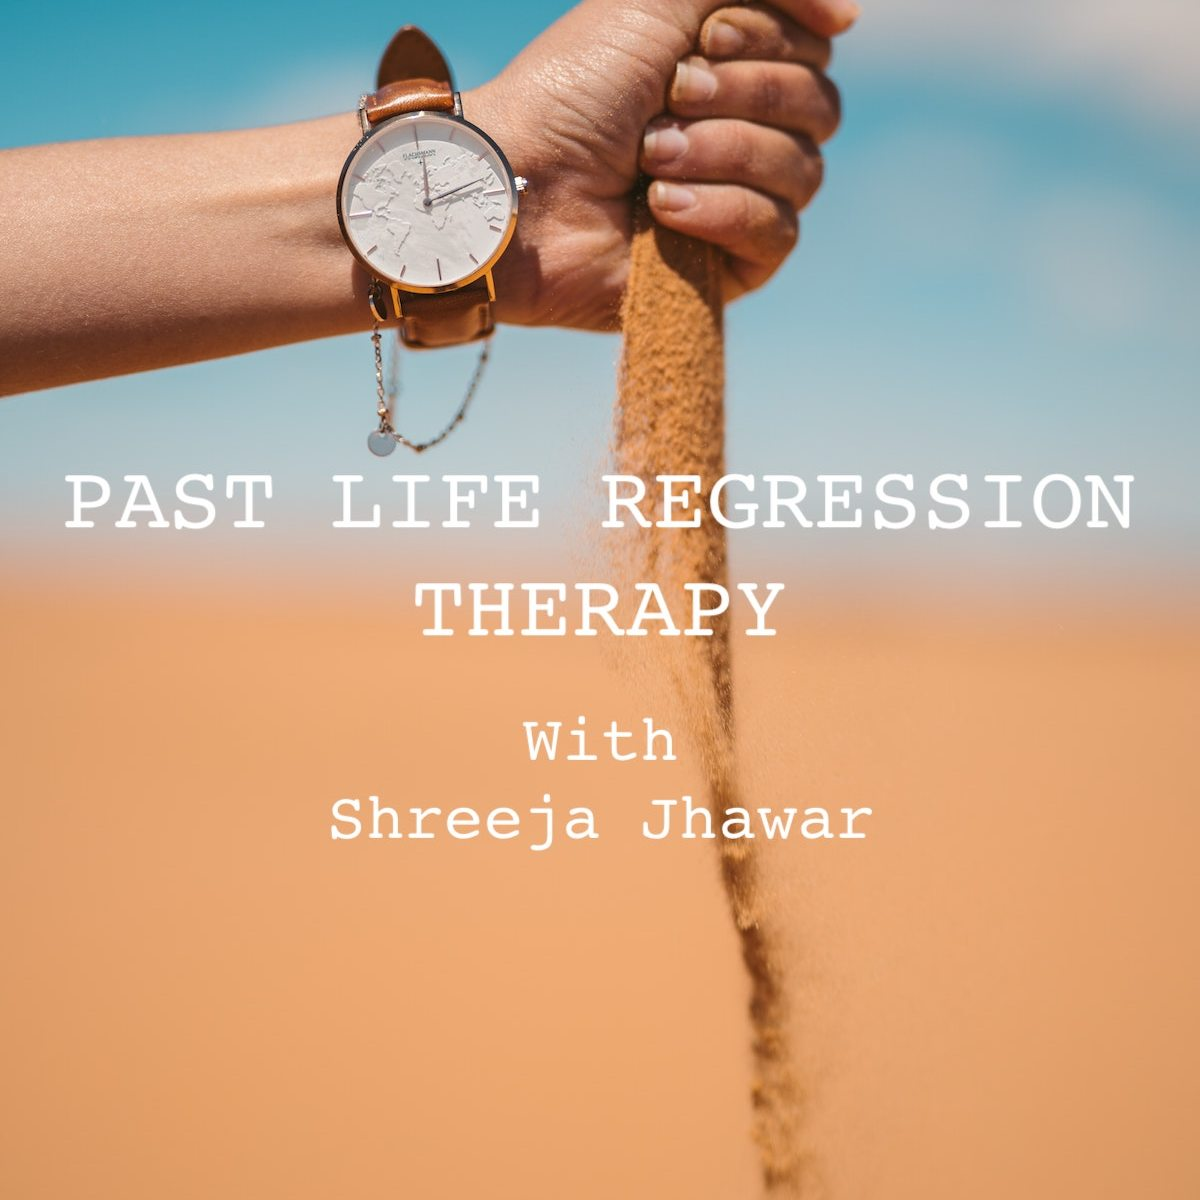 PLR THERAPY